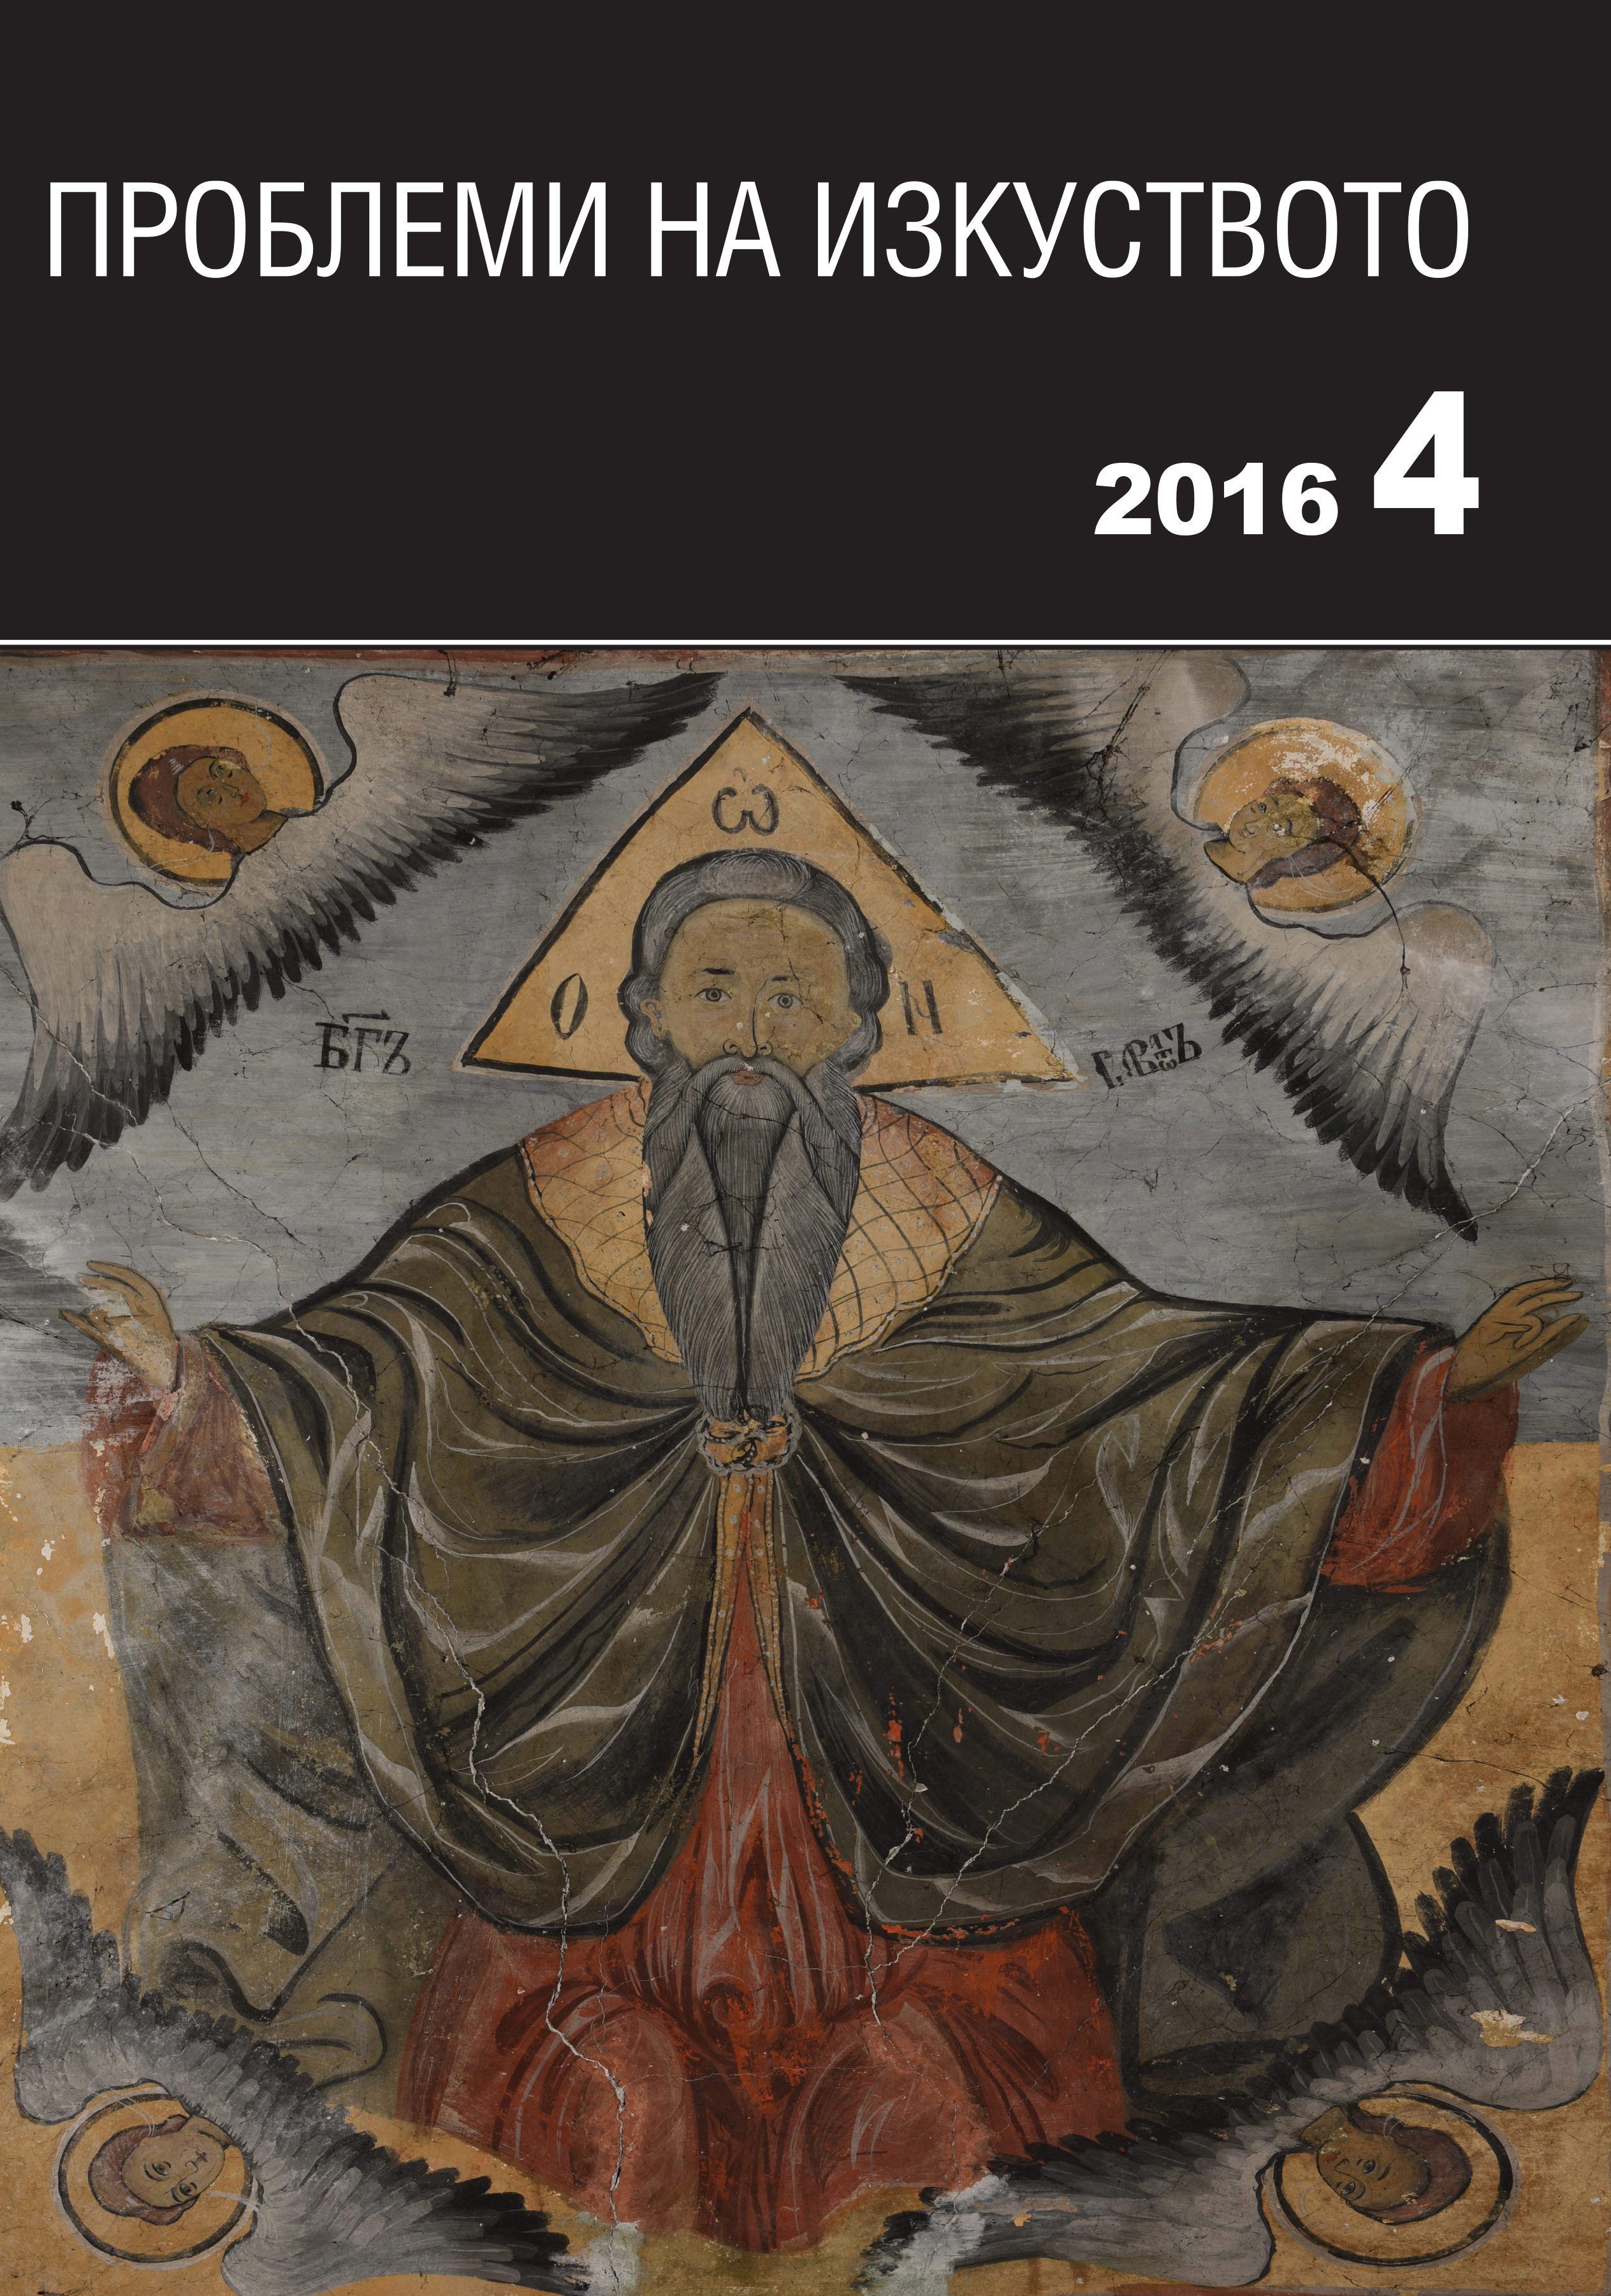 Representations of The Last Judgment in the villages of Samovodene and Hotnitsa, Veliko Tyrnovo Cover Image